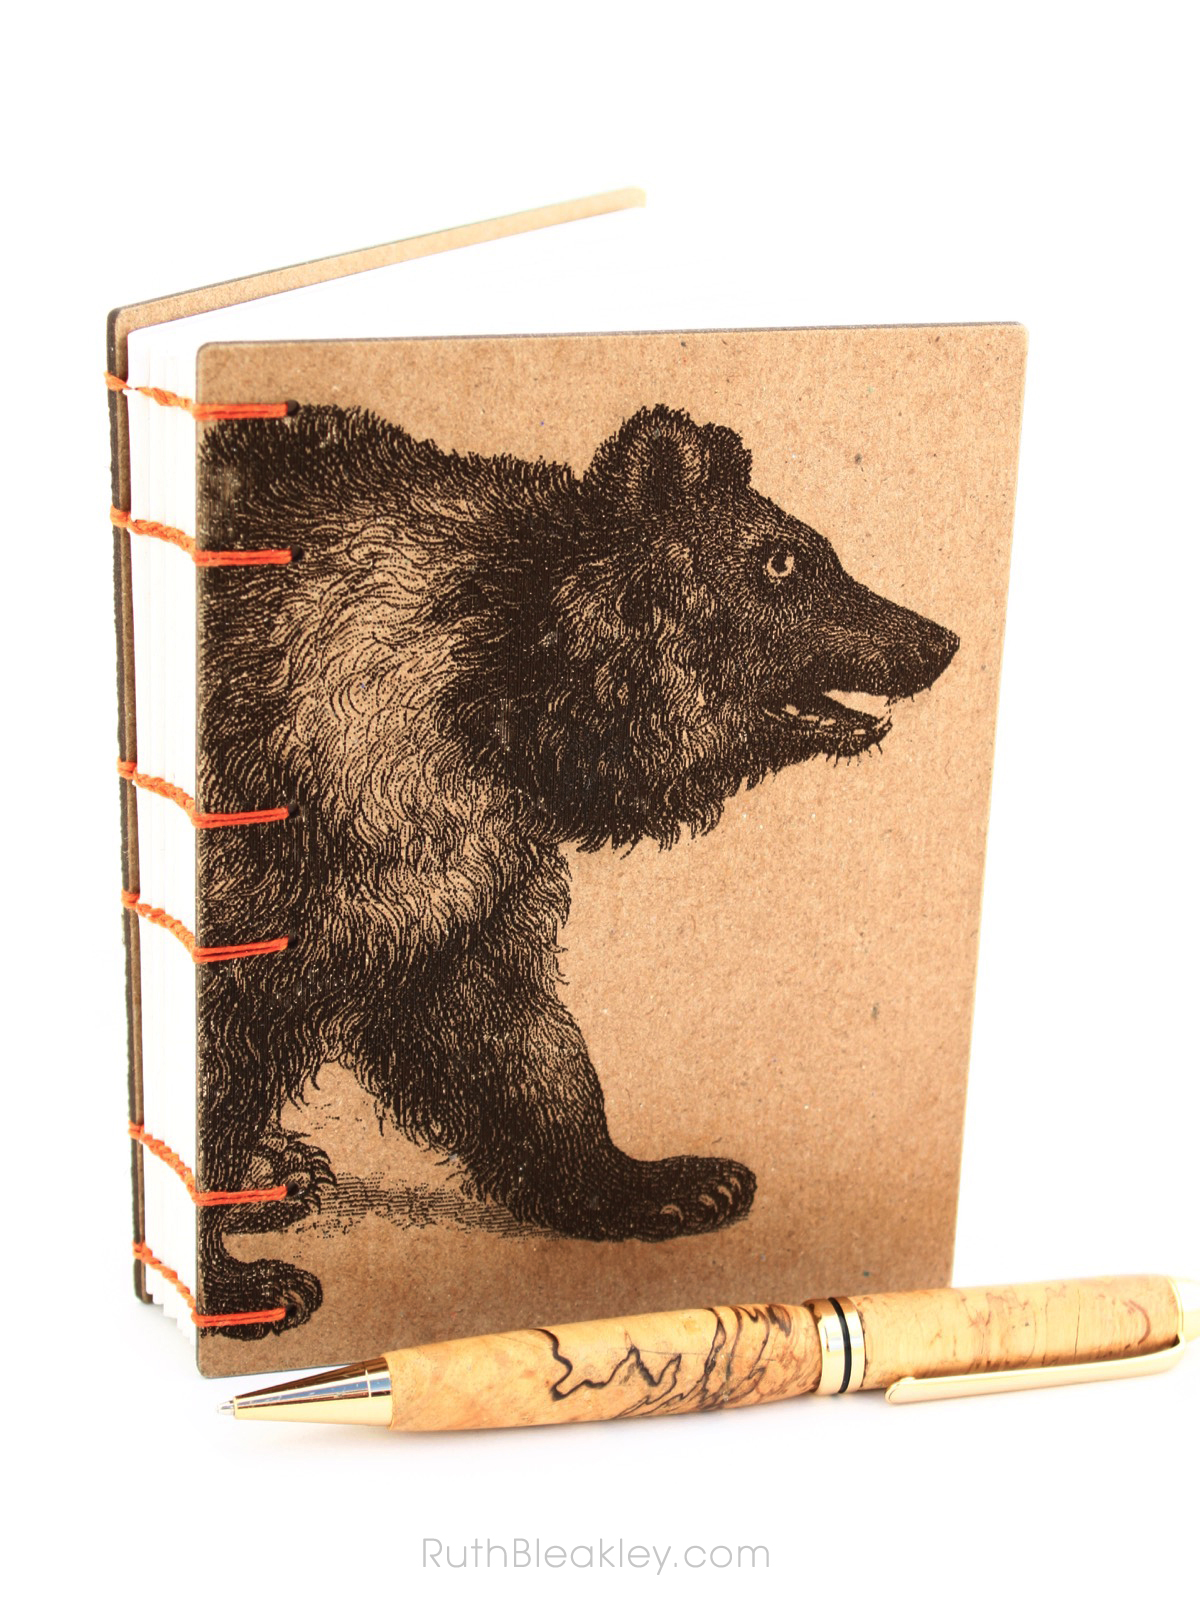 Bear Journal handmade by American book artist Ruth Bleakley - 6